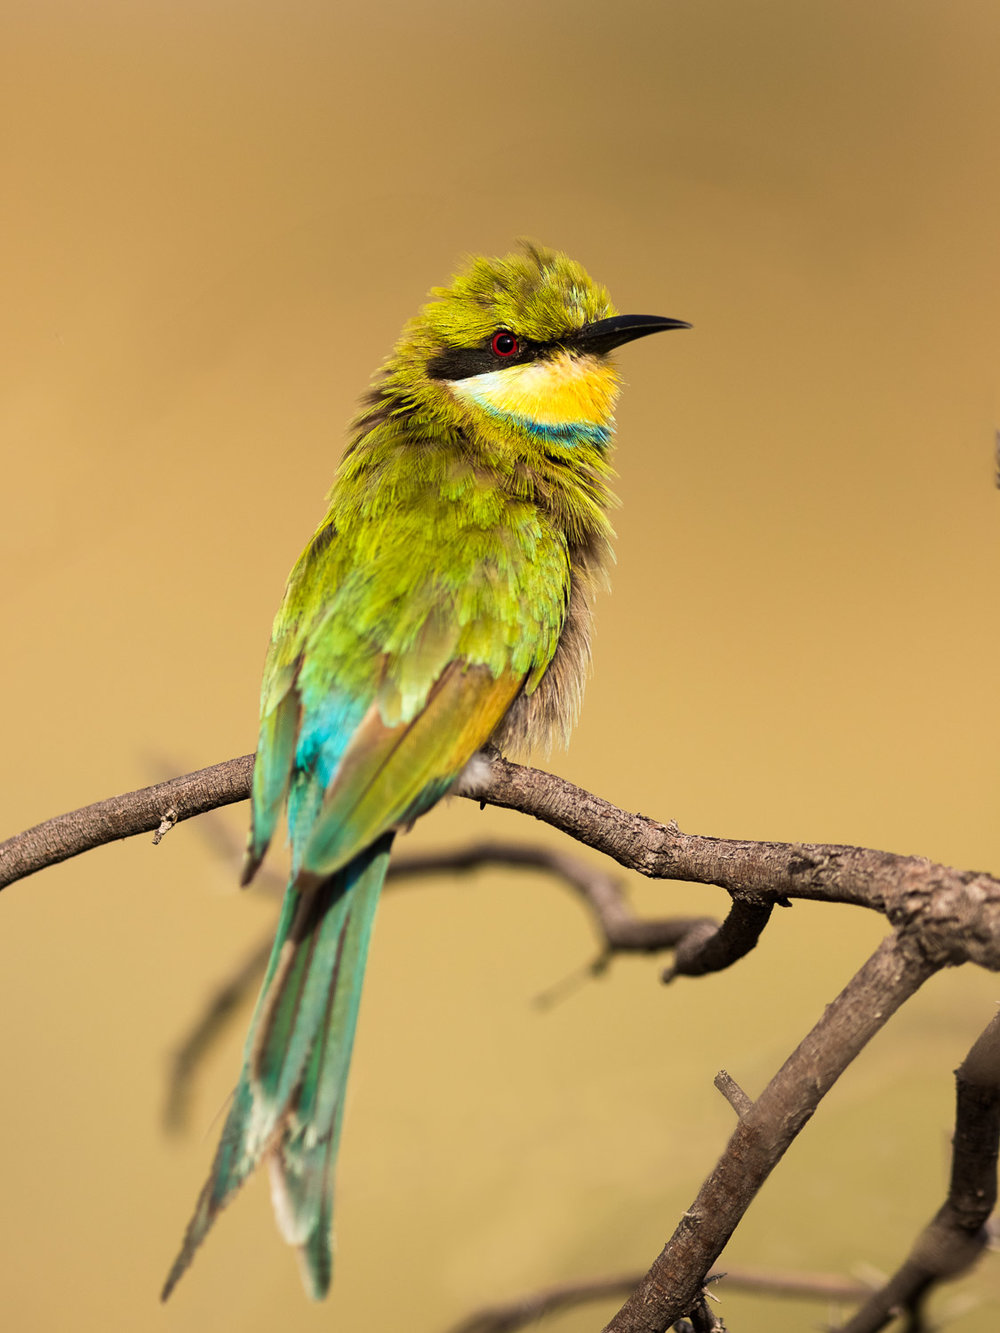 Click to enlarge - Swallow-tailed Bee-eater, Kgalagadi Transfrontier Park, South Africa.